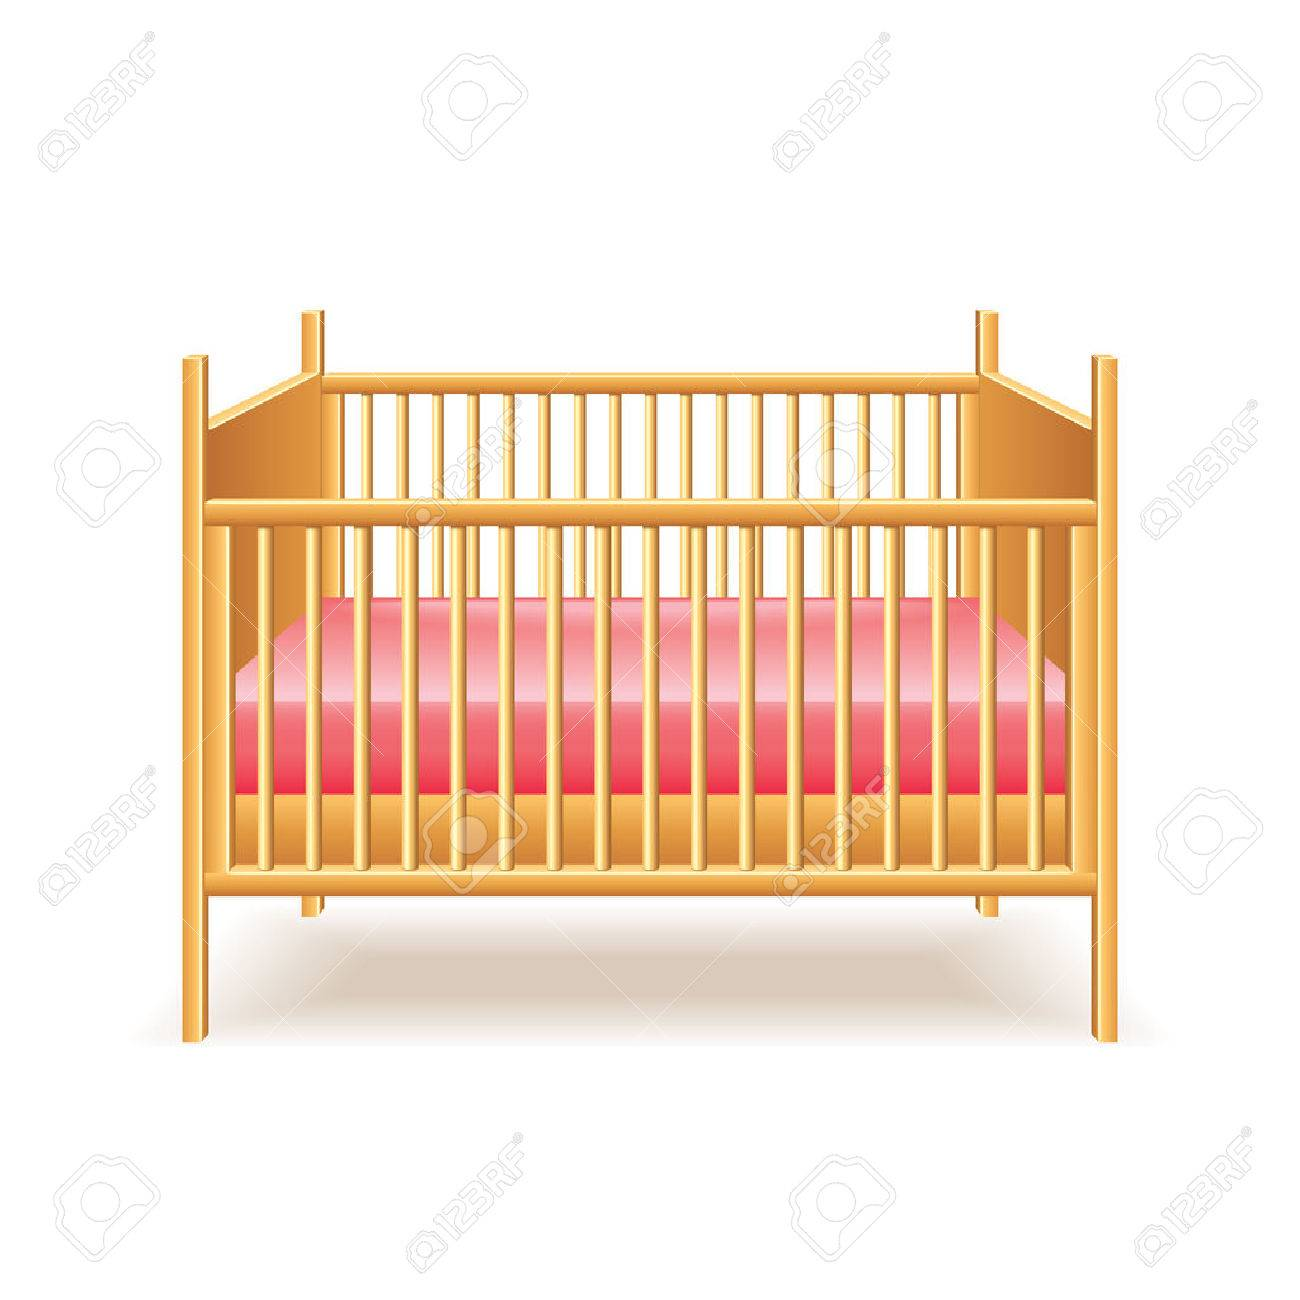 Free Bed Clipart cot, Download Free Clip Art on Owips.com.